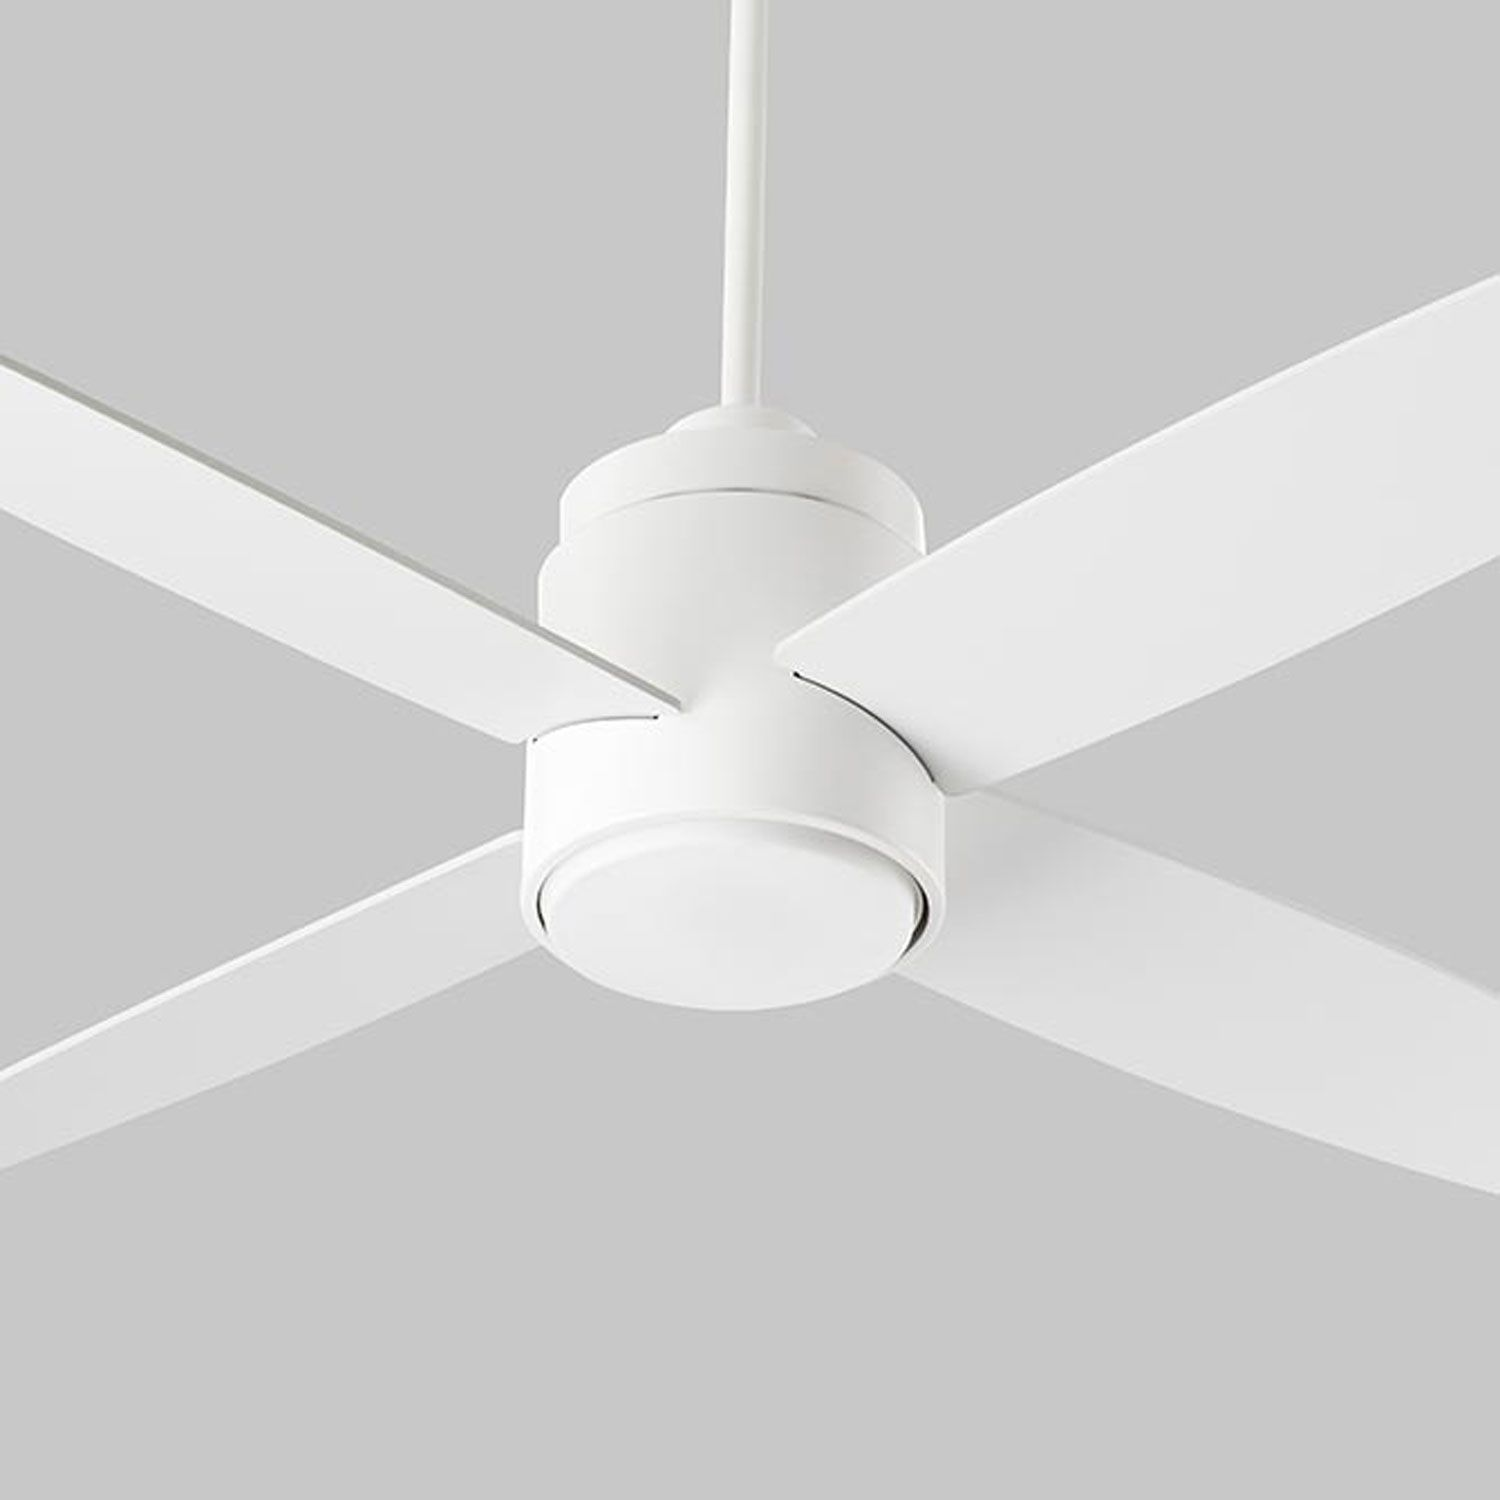 Oxygen Lighting Oslo Hugger White 52 Inch Ceiling Fan 3 102 6 Bellacor Ceiling Fan 52 Inch Ceiling Fan Ceiling Fan Makeover